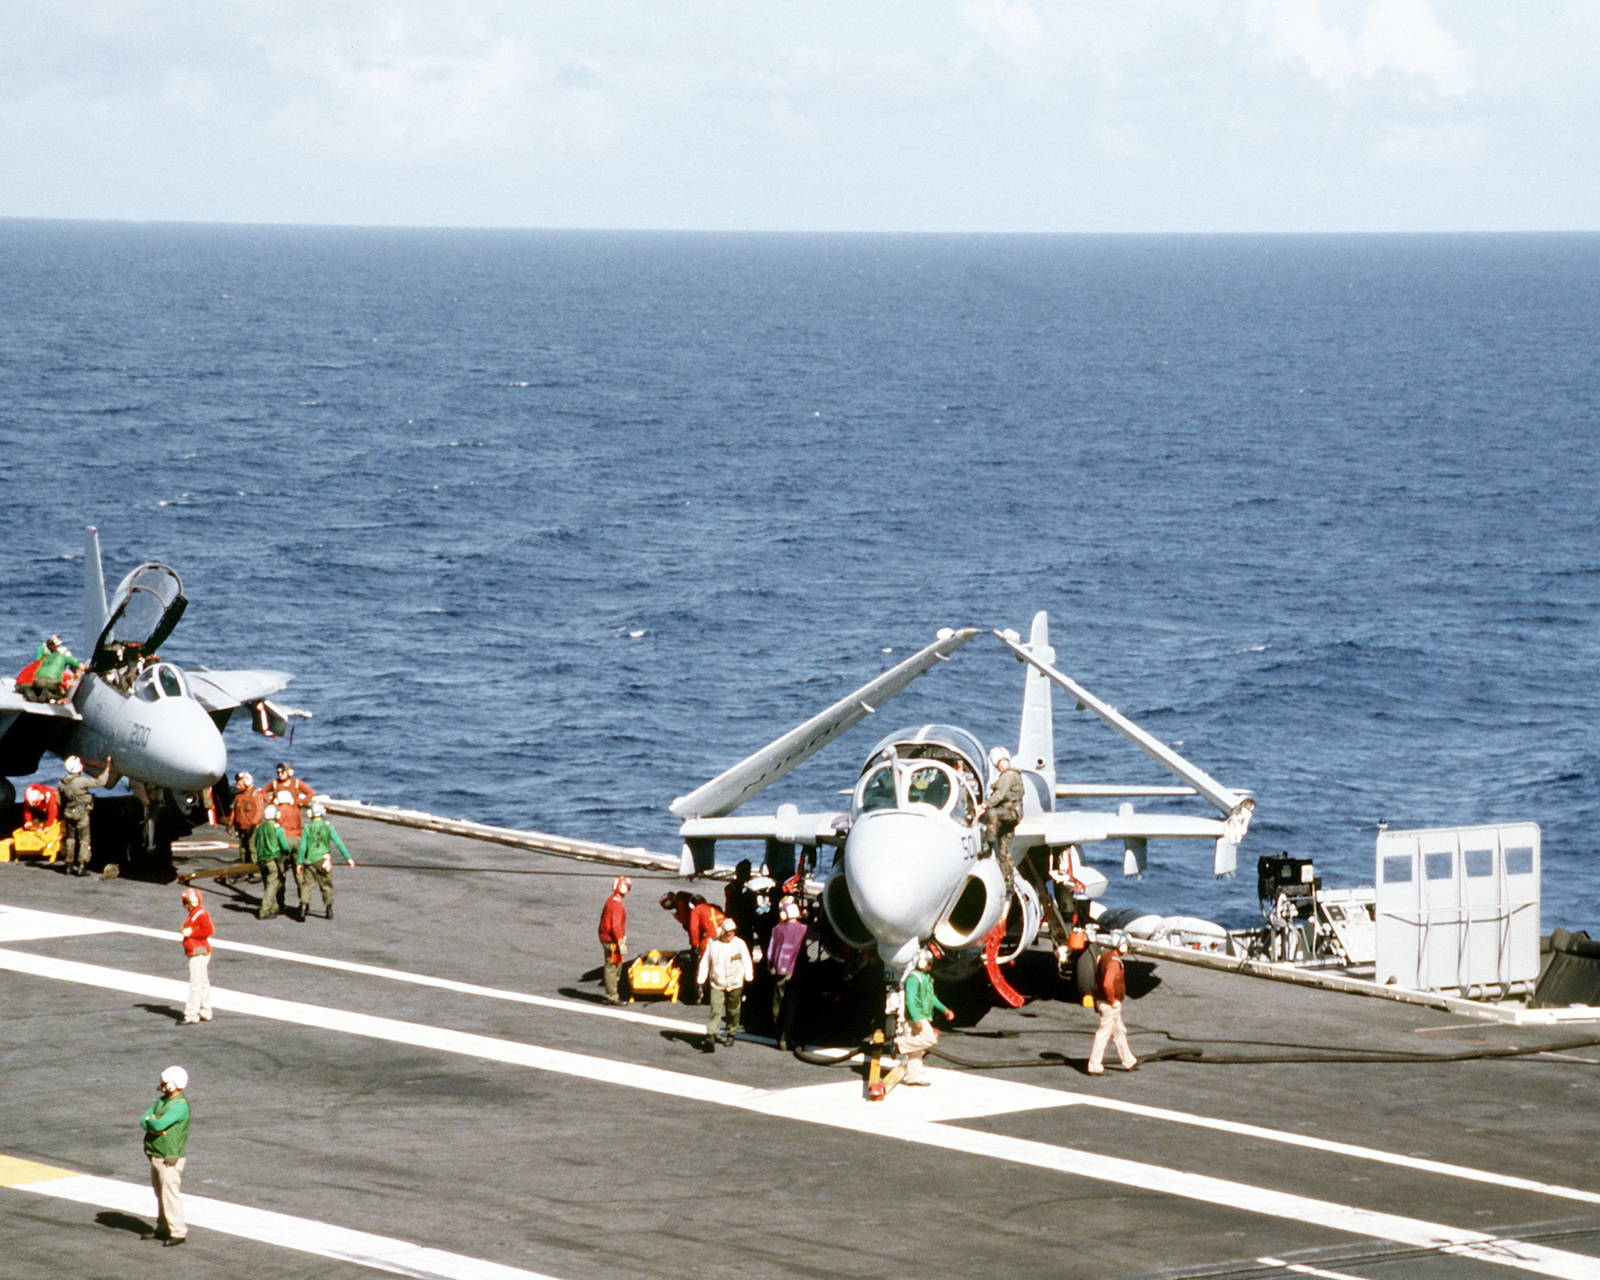 Flight deck crew members and aviation ordnancemen ready an Attack Squadron 96 (VA-96) A-6E Intruder aircraft and a Fighter Squadron 213 (VF-213) F-14A Tomcat aircraft for launch from the flight deck of the nuclear-powered aircraft carrier USS ABRAHAM LINCOLN (CVN-72)